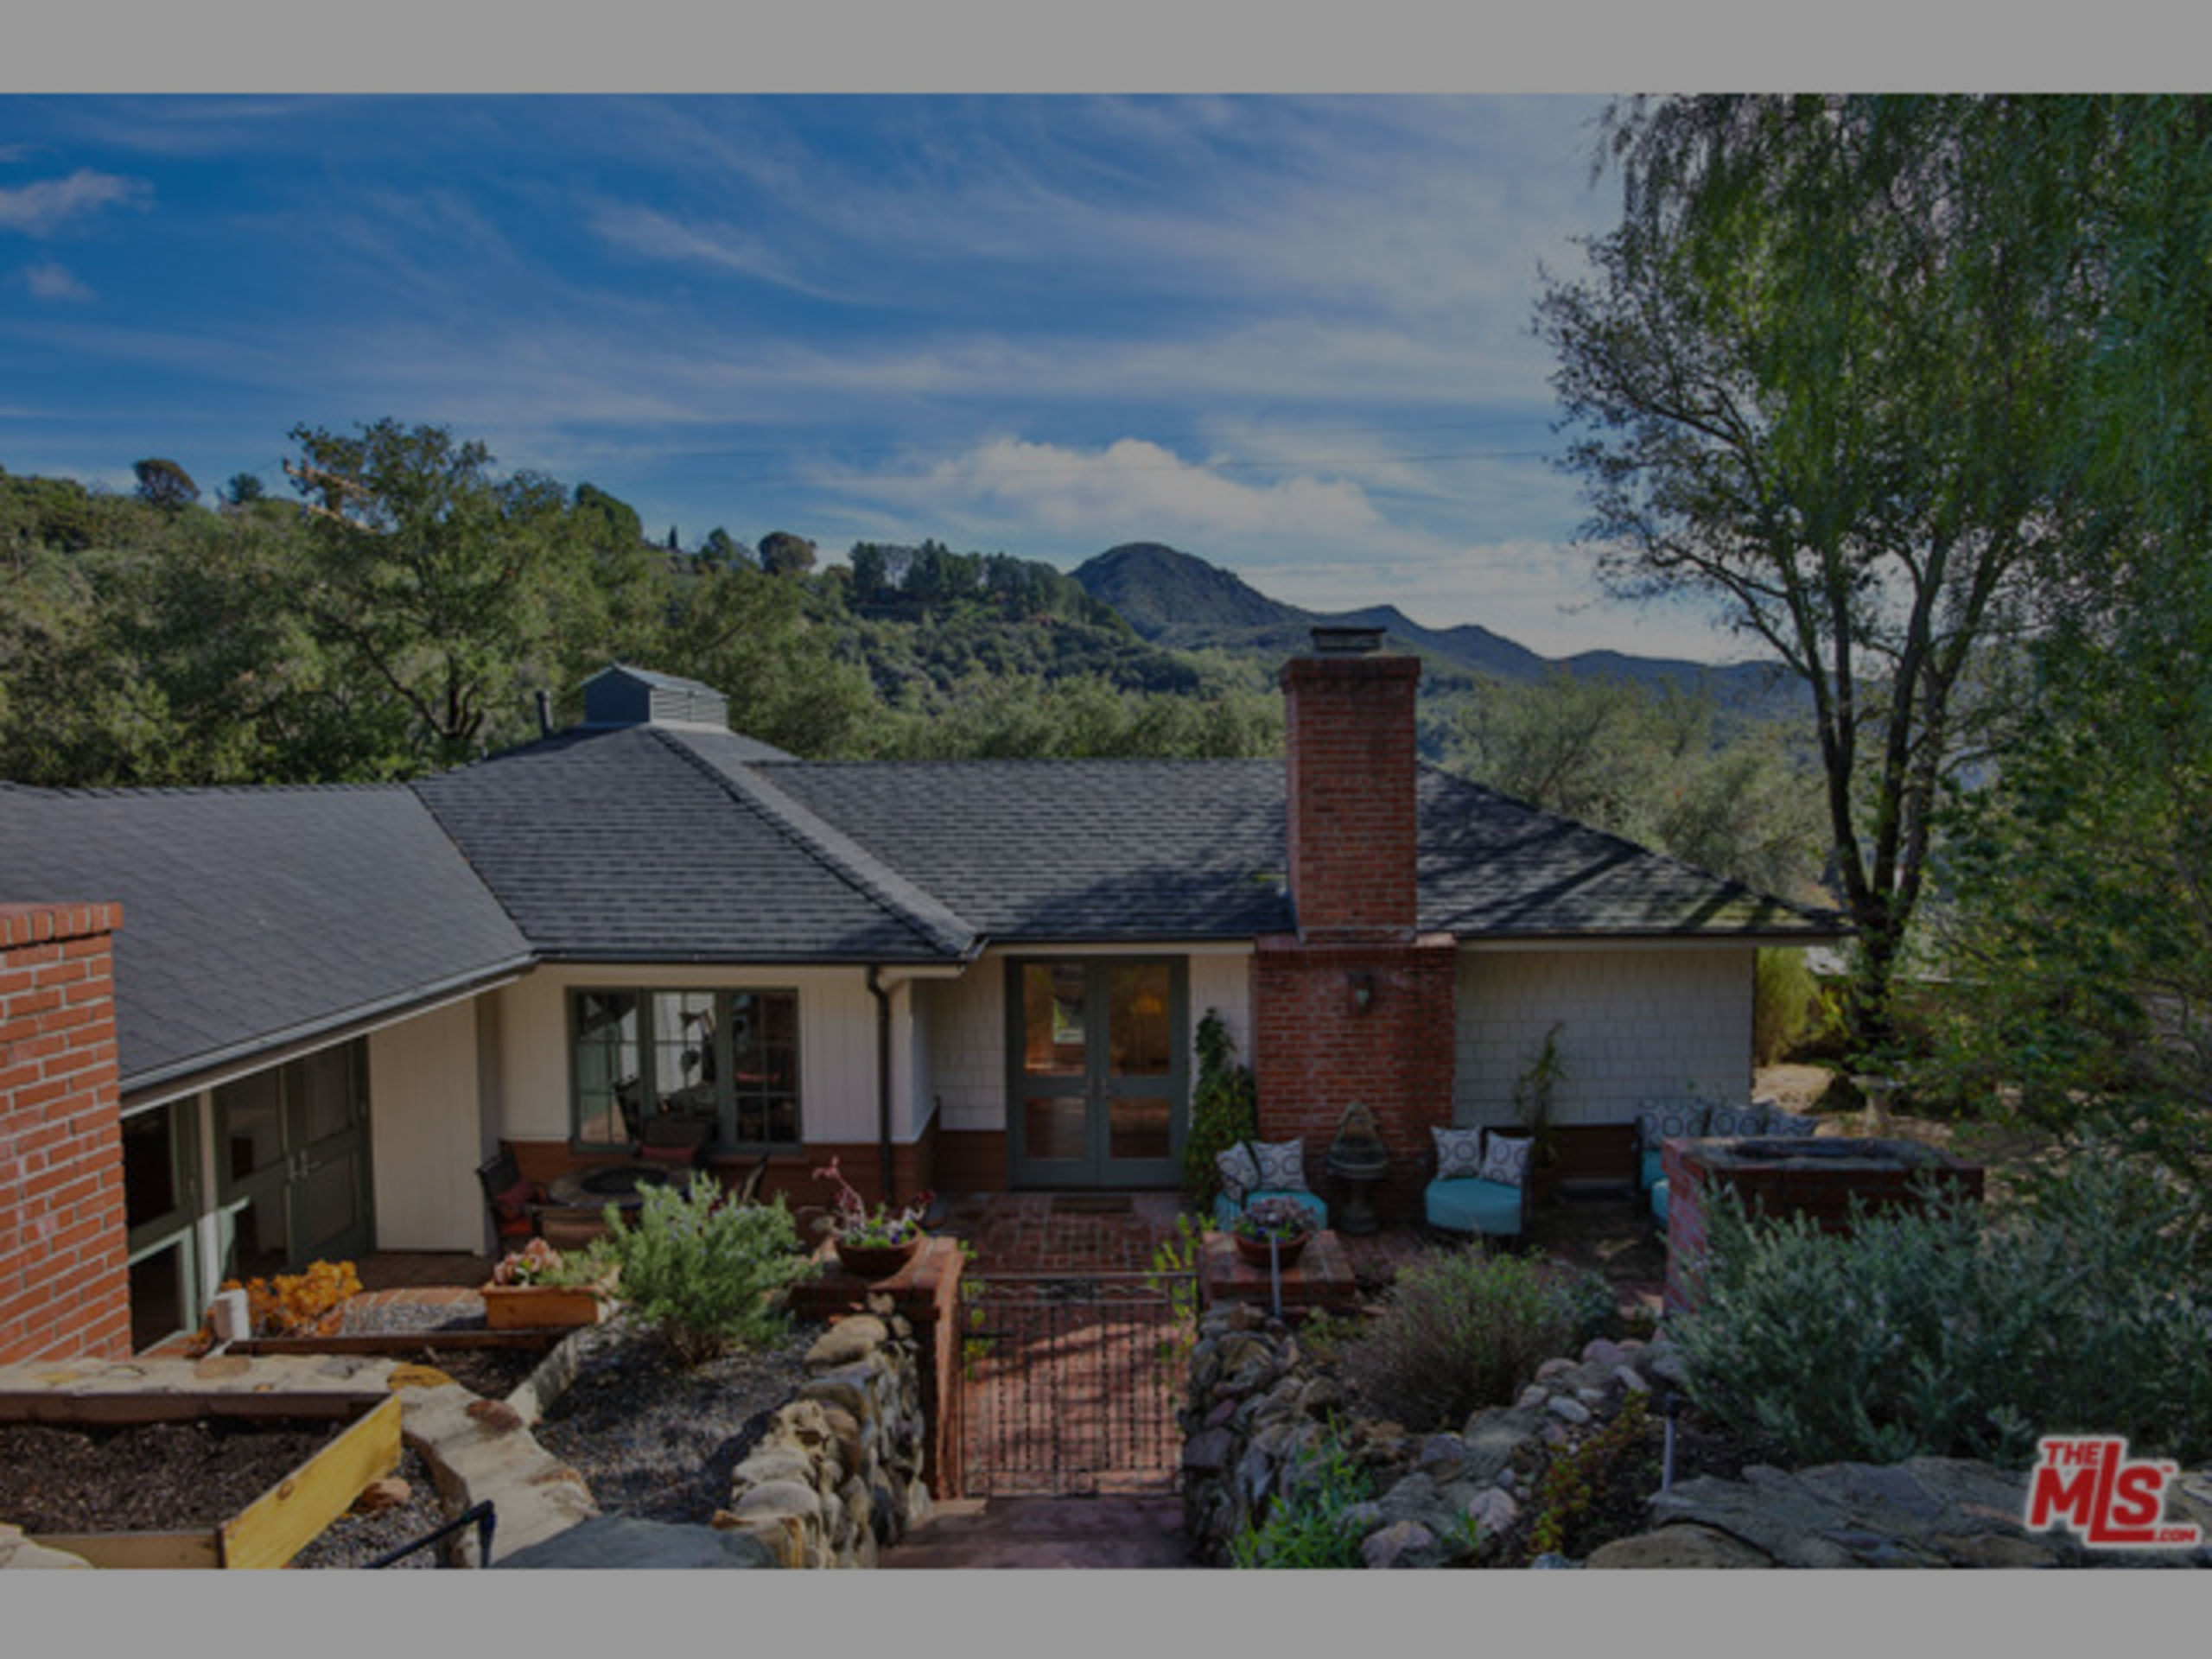 SOLD | FERNWOOD ENTERTAINER'S HOME W/ MOUNTAIN VIEW  |  $1,399,000